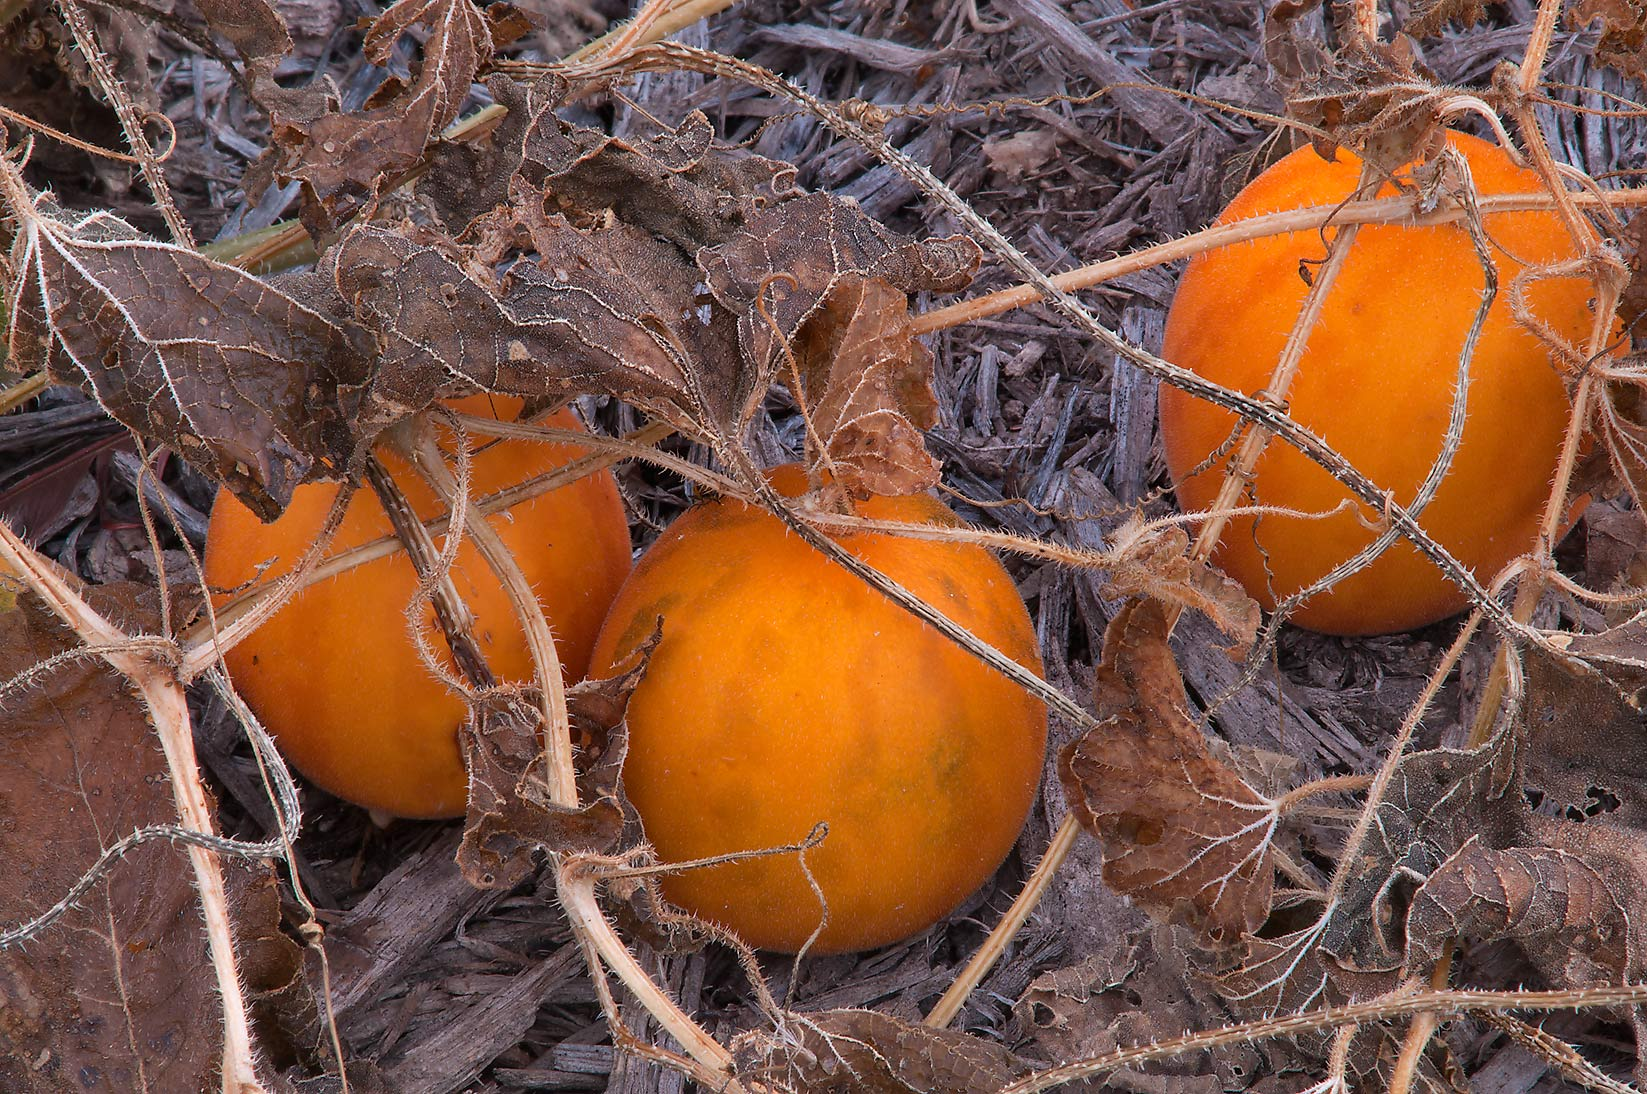 Orange fruits of wild muskmelon (Cucumis melo...in Lake Bryan Park. Bryan, Texas